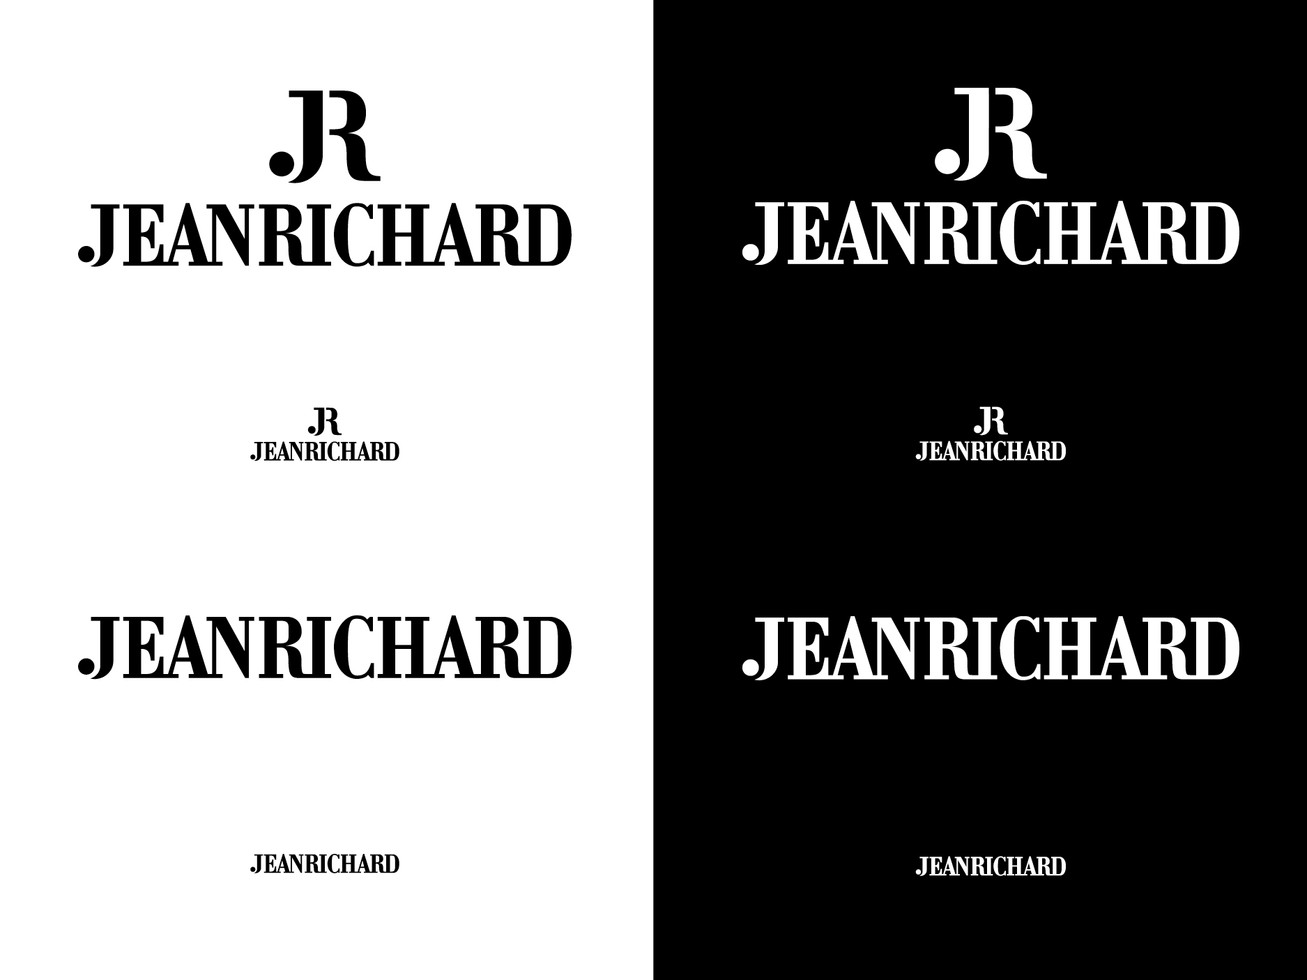 Logotype with and without sign